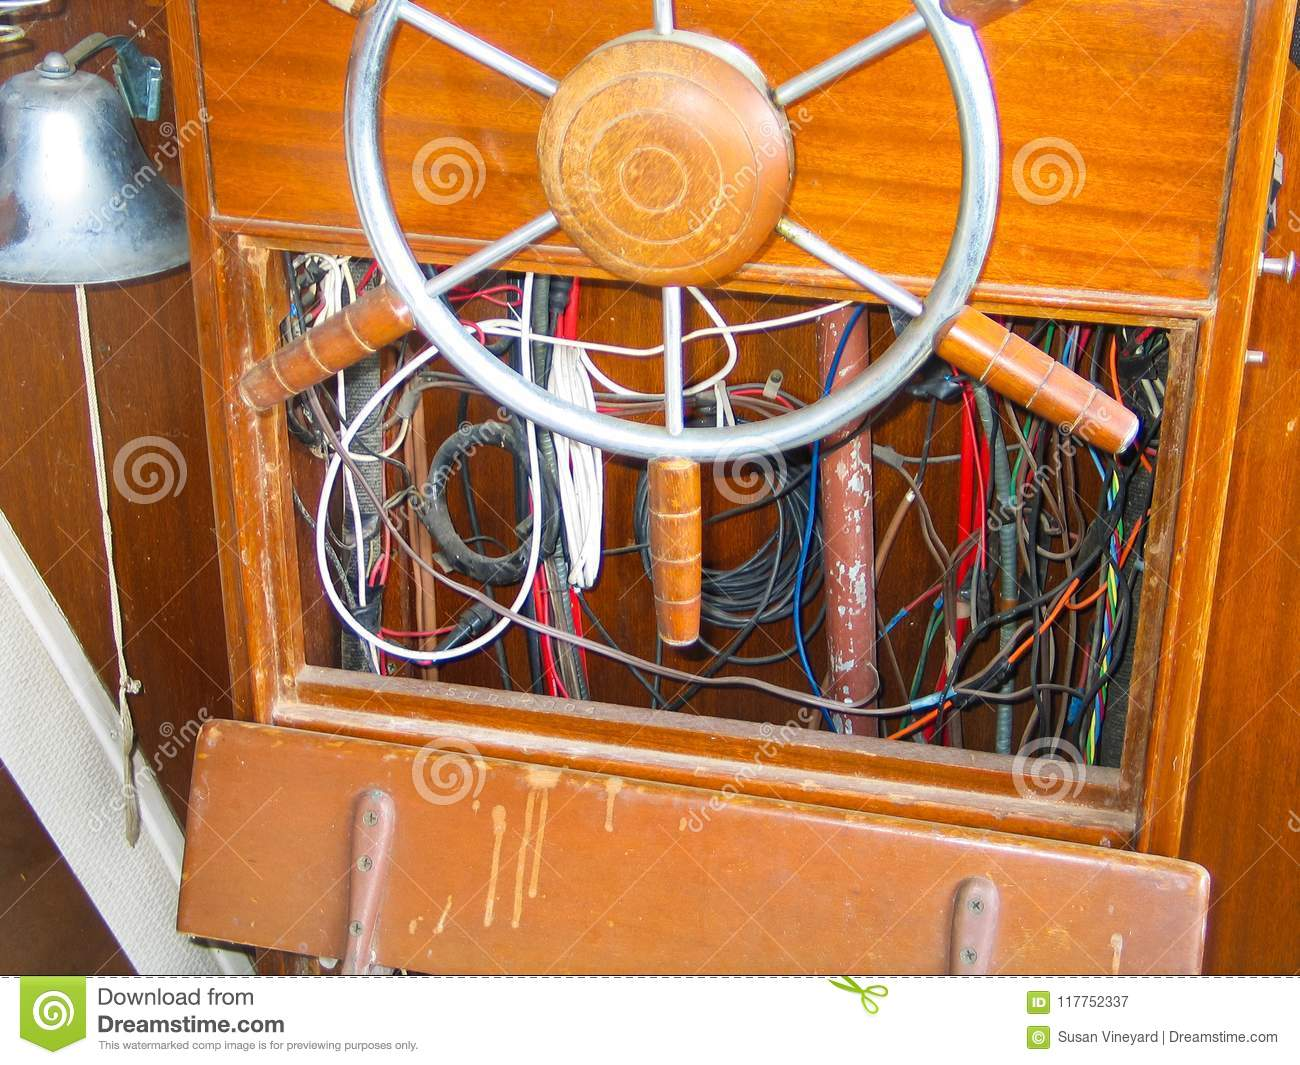 Enjoyable Steering Wheel And Exposed Wiring Inside Helm Of Old Wooden Boat Letkol Mohammedshrine Wiring Cloud Letkolmohammedshrineorg